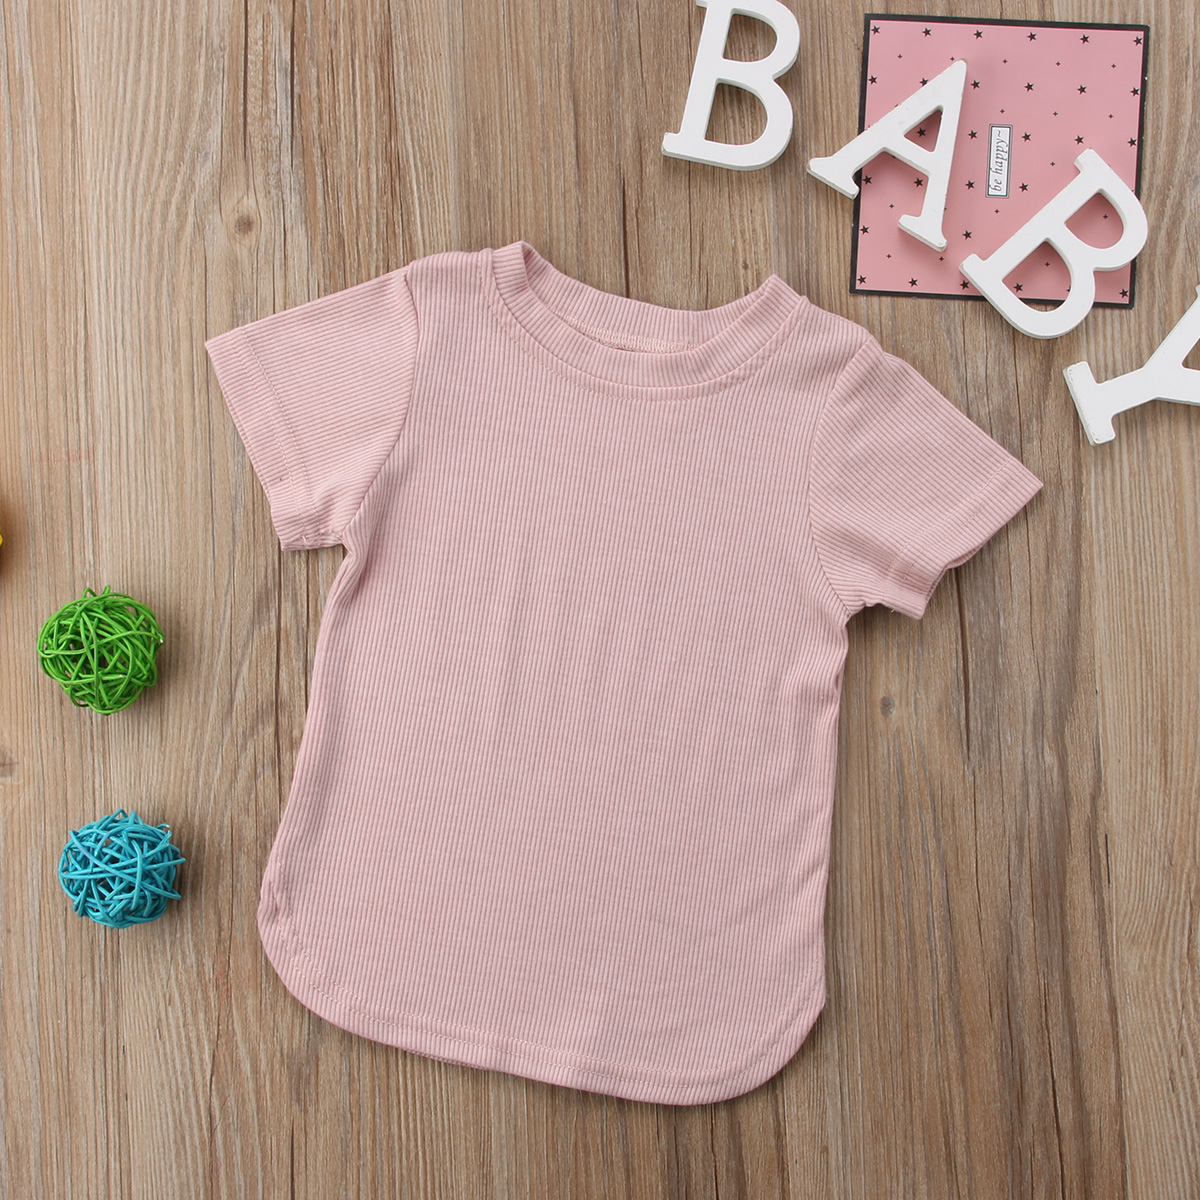 HTB1tS52KkOWBuNjSsppq6xPgpXa7 2019 Summer Mom Daughter Short Sleeve T shirt Dress Family Matching Outfits Baby Kid Women Party Dresses Cotton Clothes Dropship